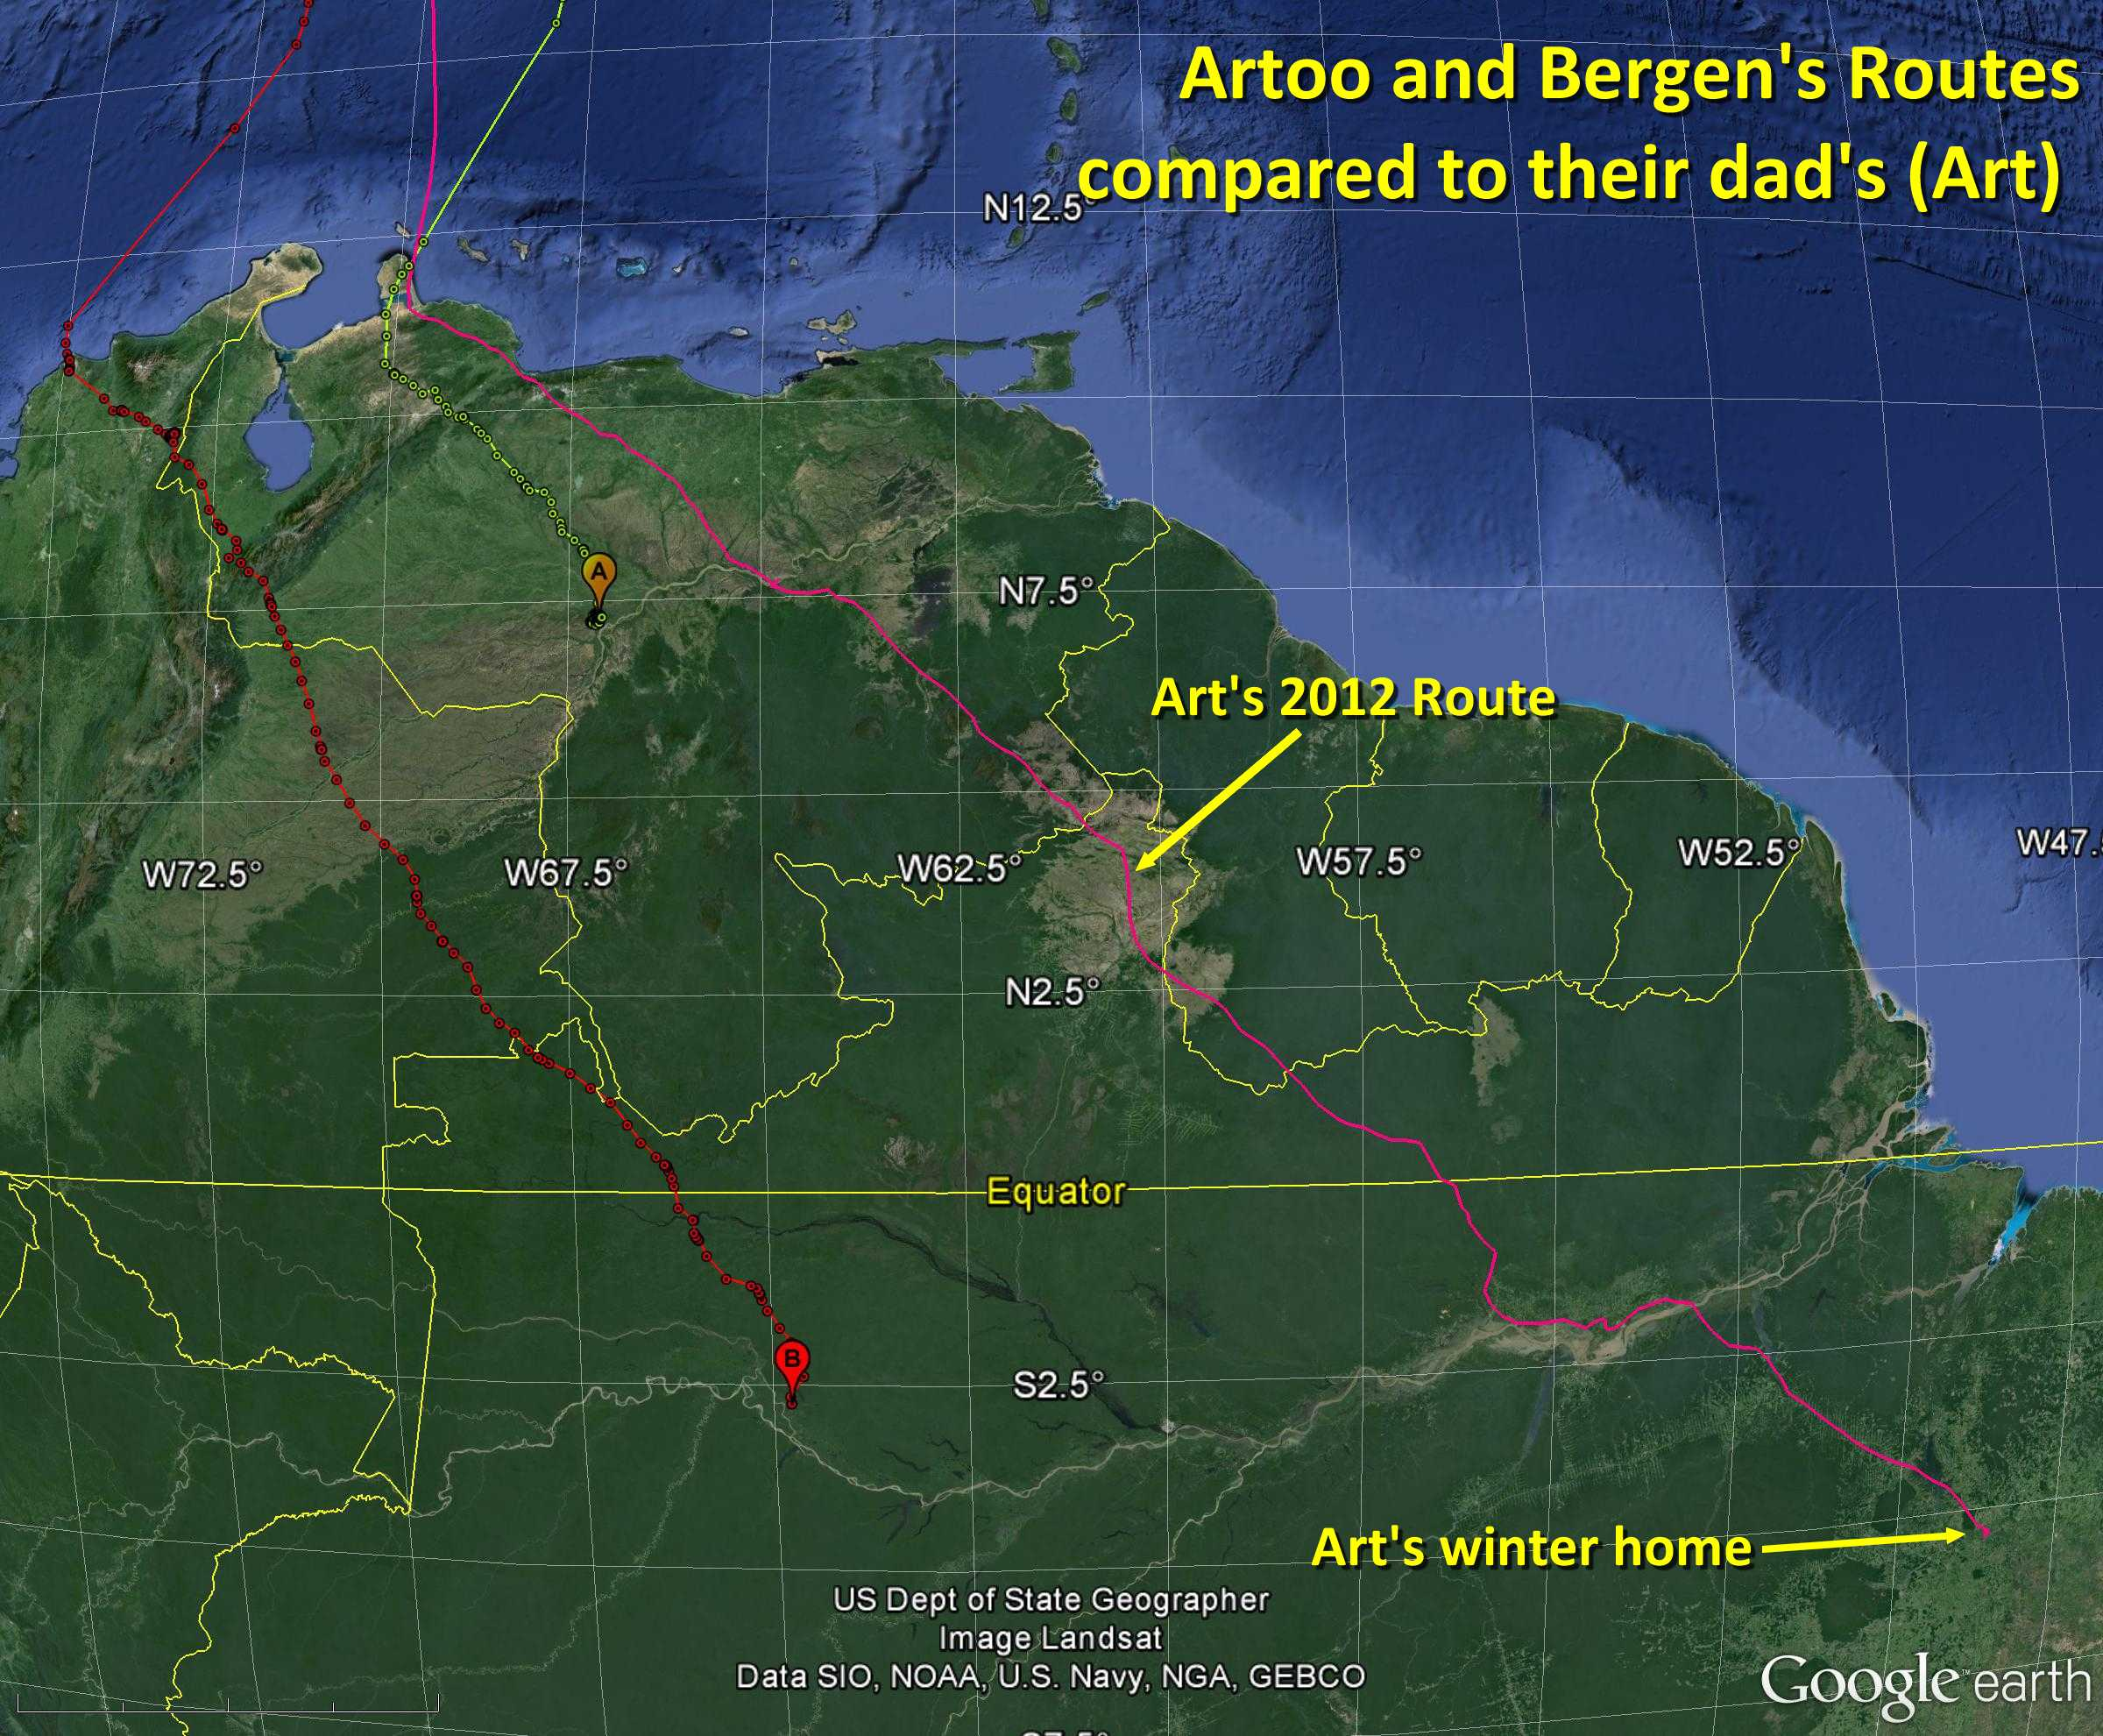 Artoo and Bergen, and Art's Route - November 8, 2013